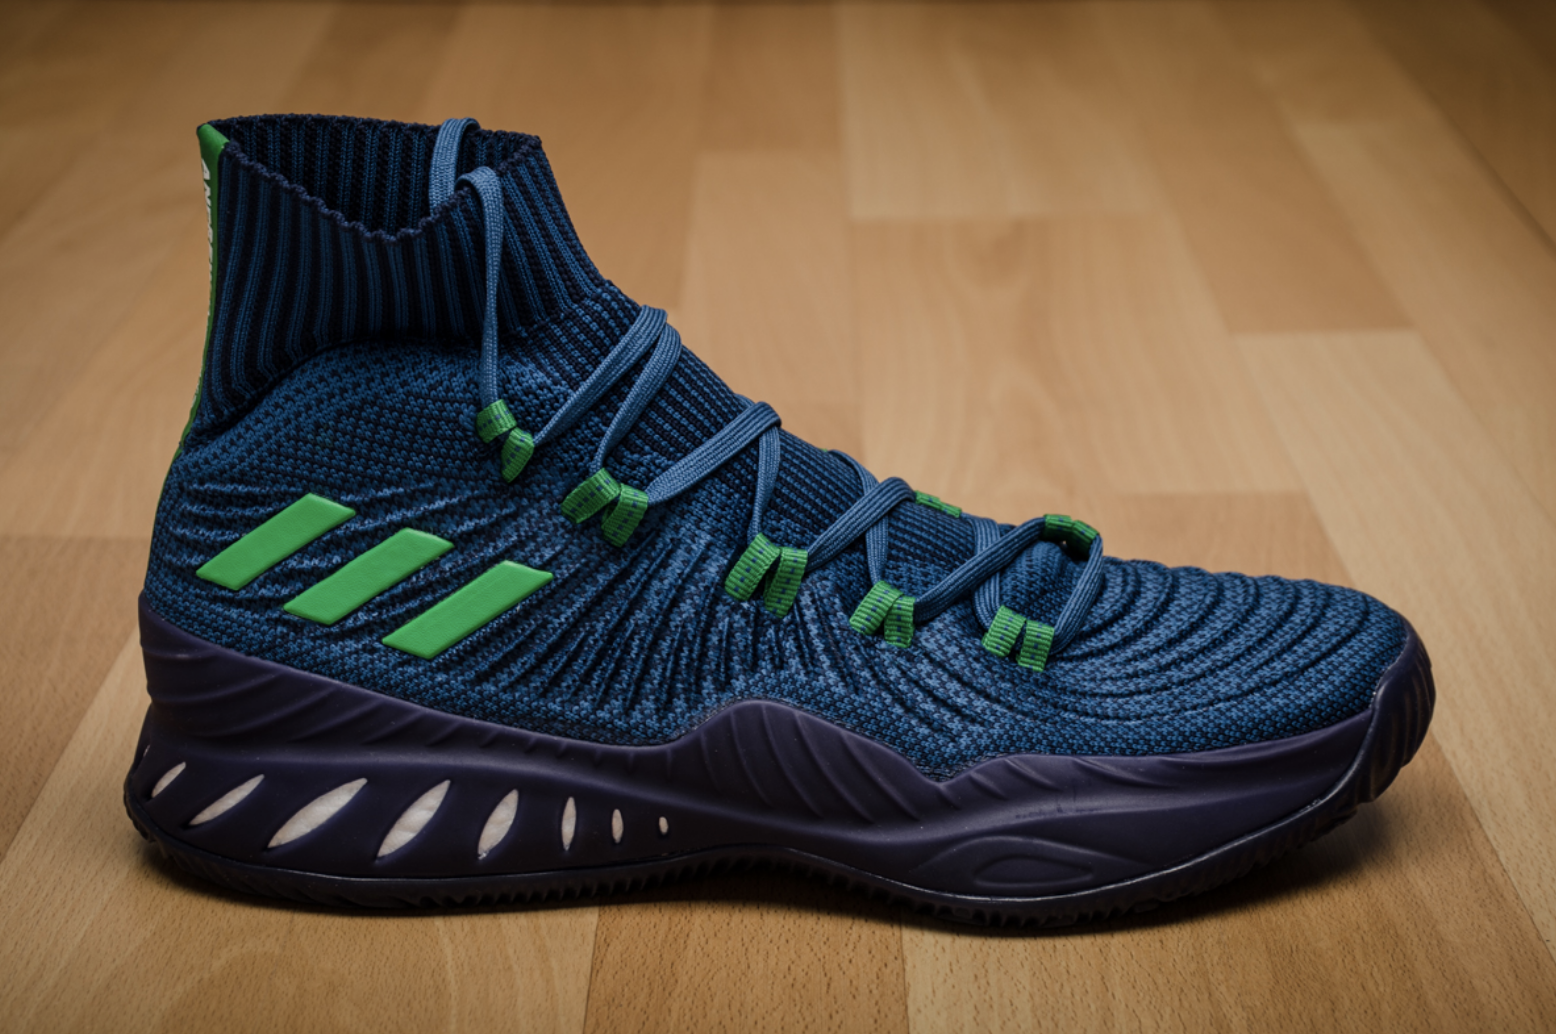 cheaper 29c67 cde62 NEW! adidas CRAZY EXPLOSIVE PRIMEKNIT Andrew Wiggins Navy Blue Shoes BY4468  PE